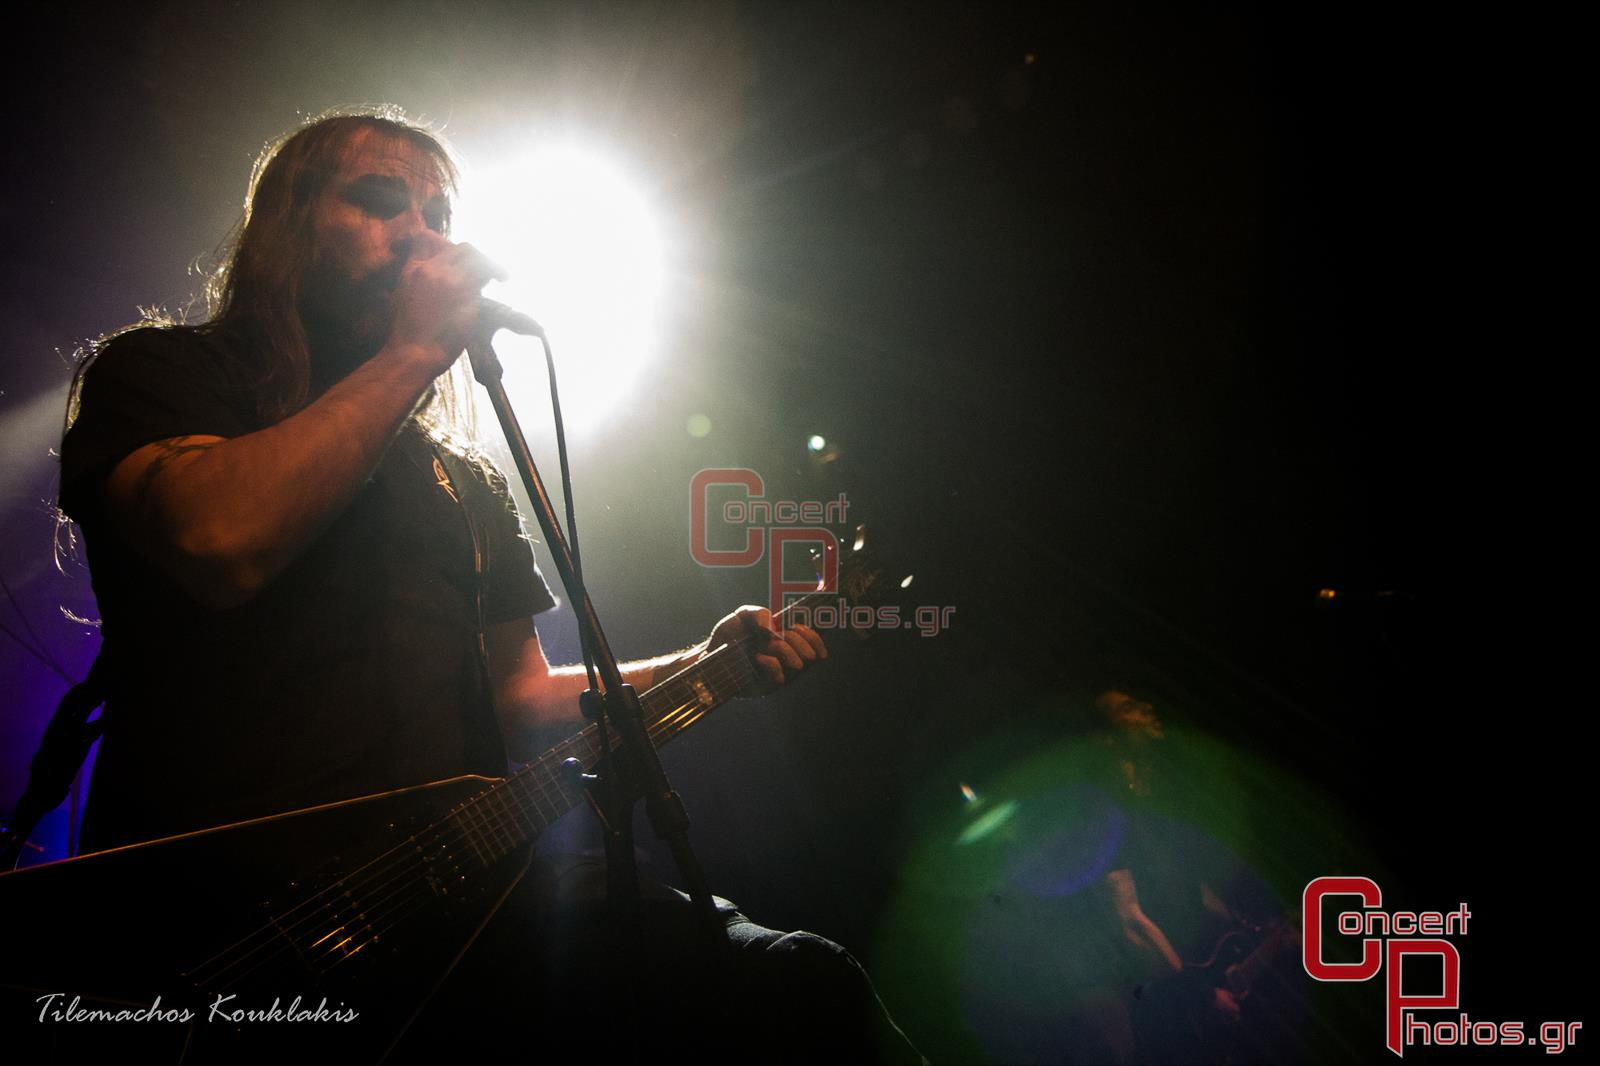 Rotting Christ-Rotting Christ photographer:  - ConcertPhotos-5132